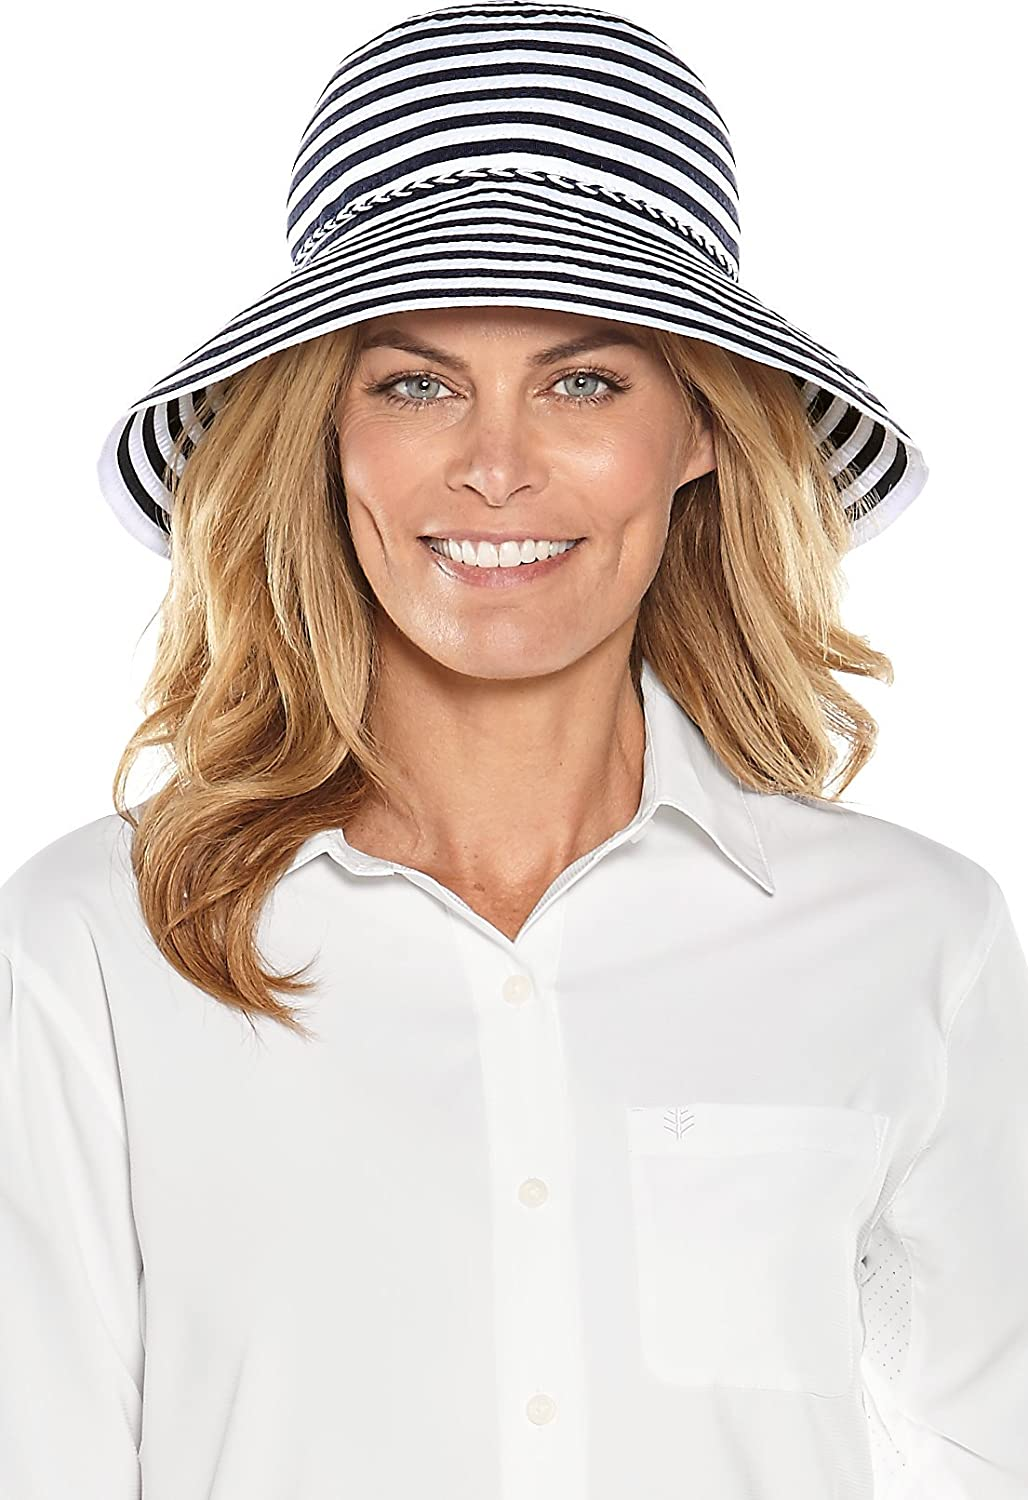 0a3f3ac83521f8 Coolibar UPF 50+ Women's Audrey Ribbon Bucket Hat - Sun Protective (One  Size- Navy/White Small Stripe) at Amazon Women's Clothing store: